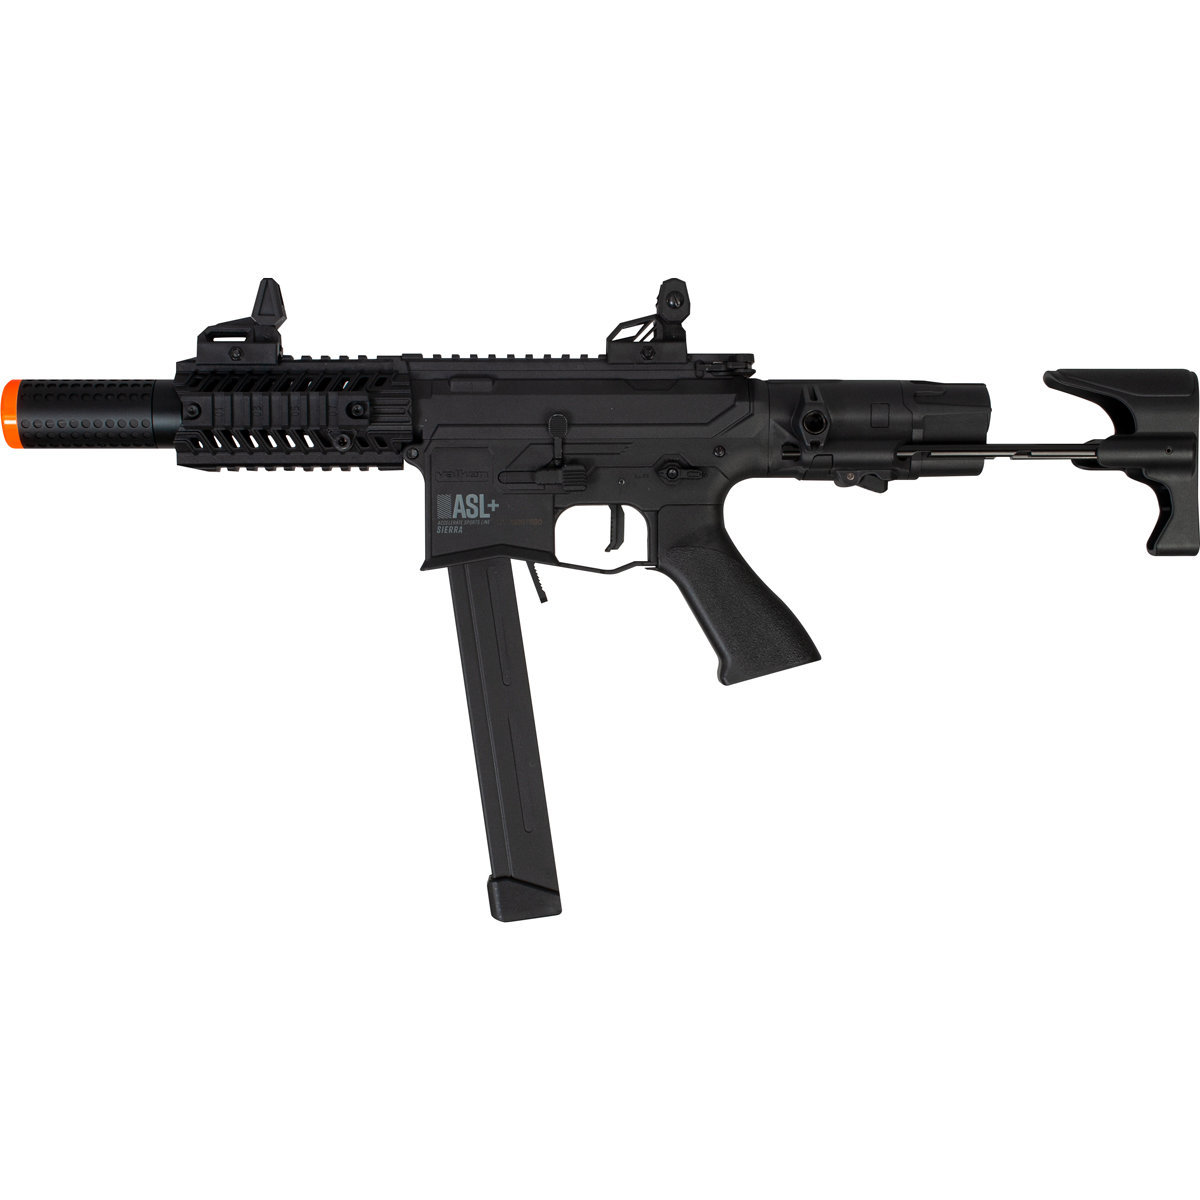 View larger image of Valken ASL+ Sierra AEG Rifle